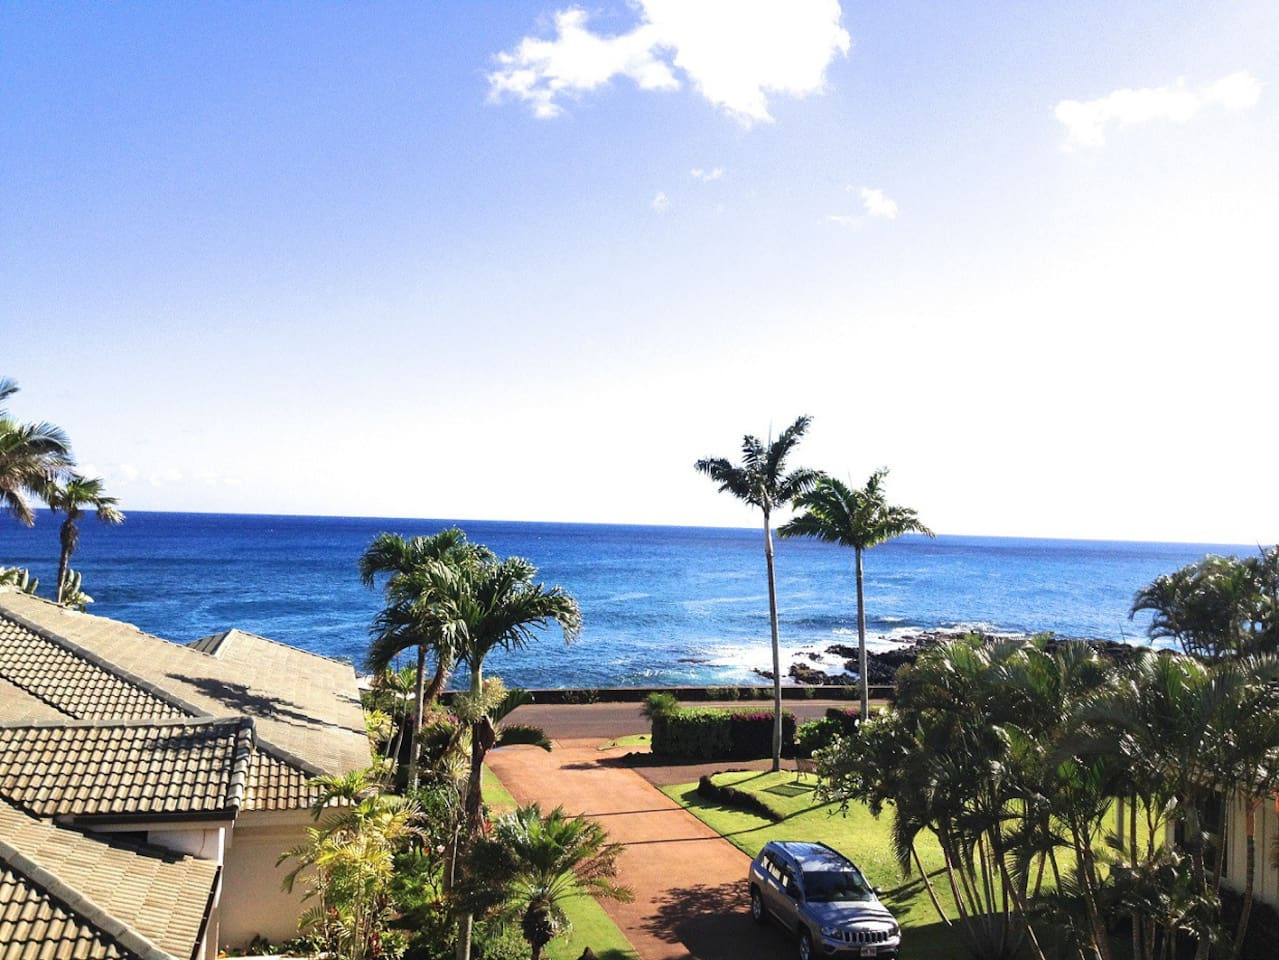 View from the Master Bedroom Lanai